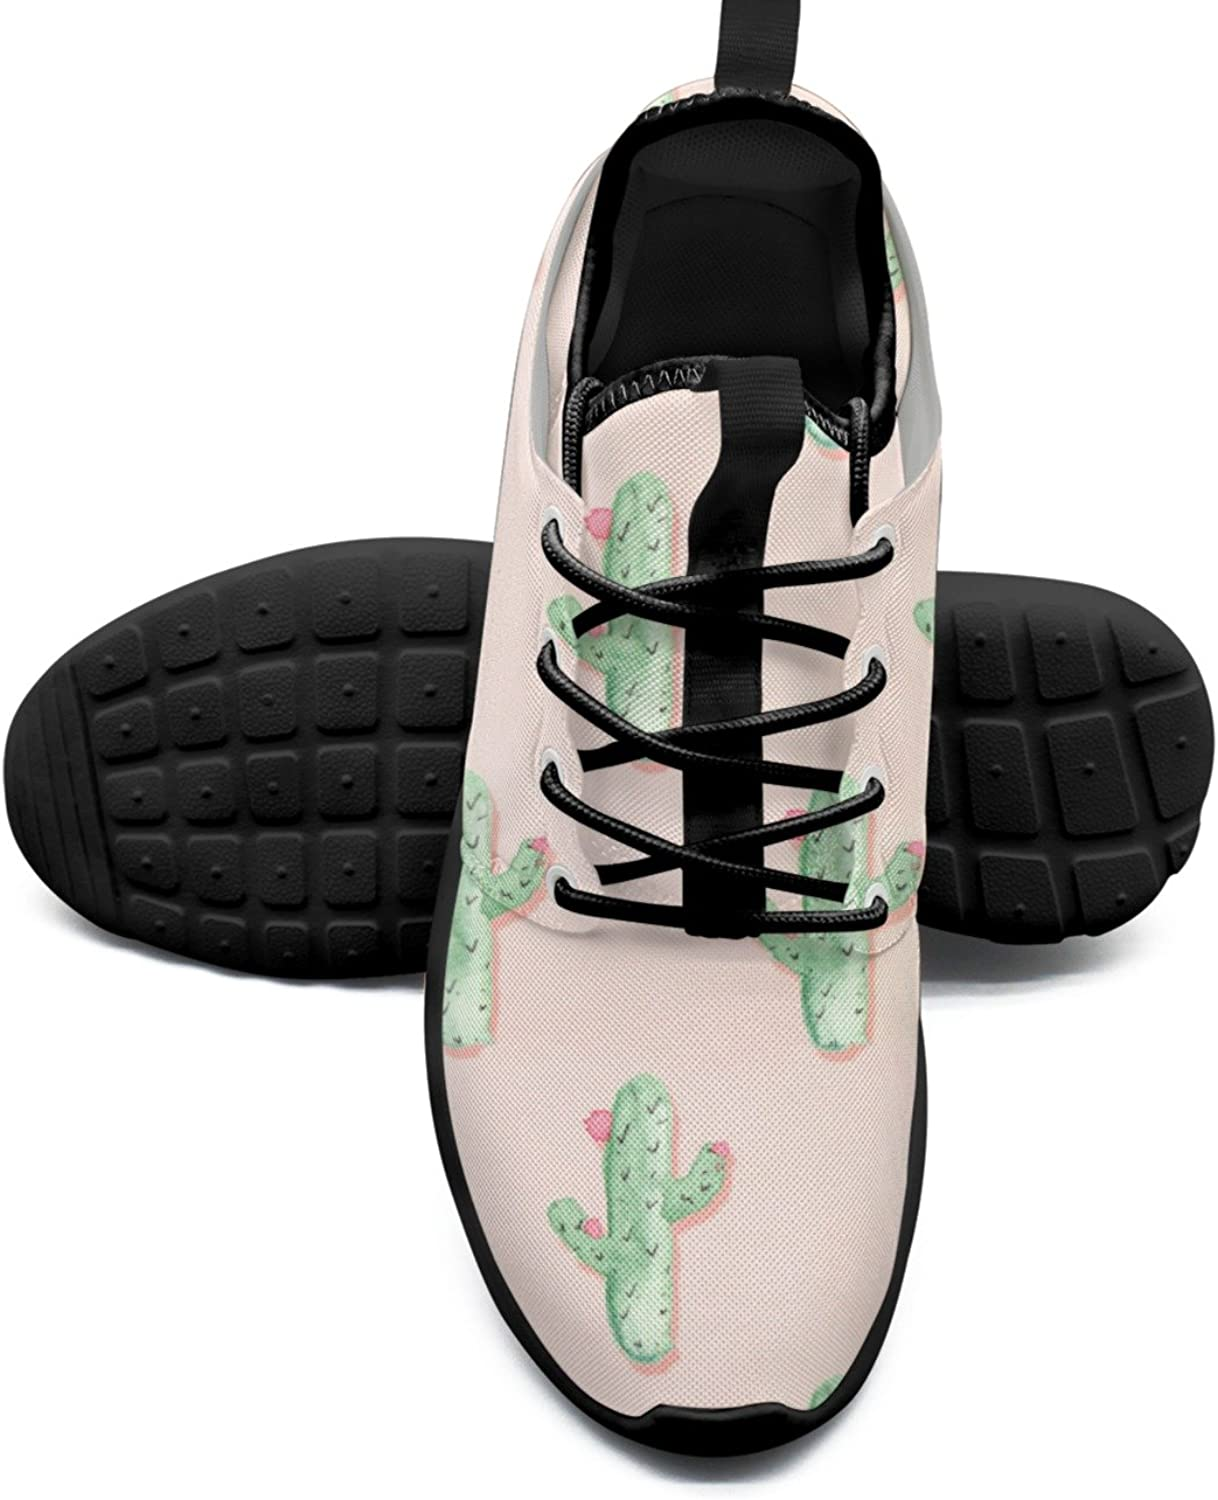 Cute Cactus And Flowers Printing Women's Walking shoes Hip Hop Mesh Lightweight Tennis Sneakers